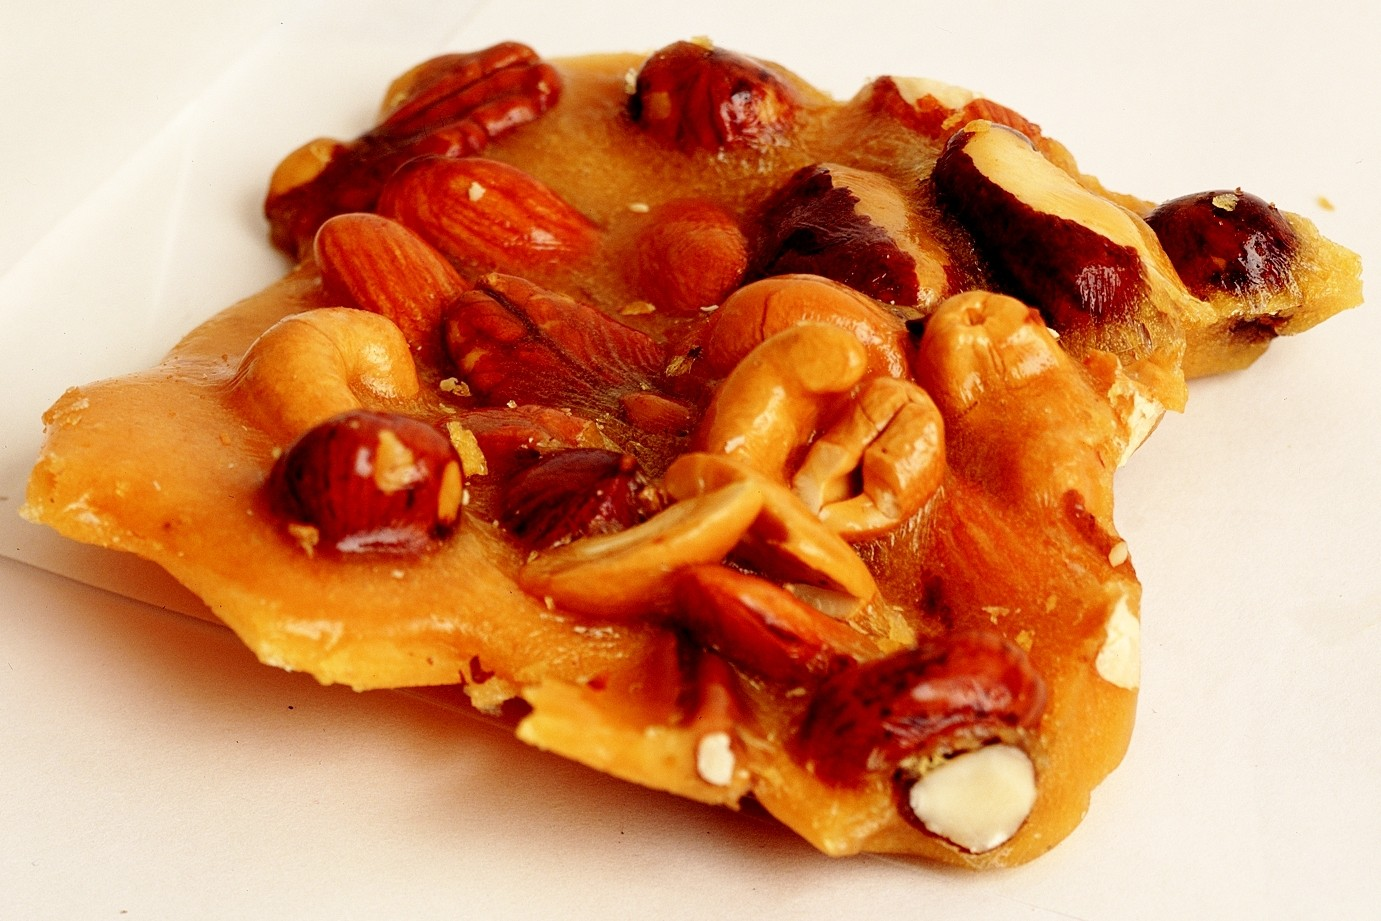 Mixed Nut Brittle